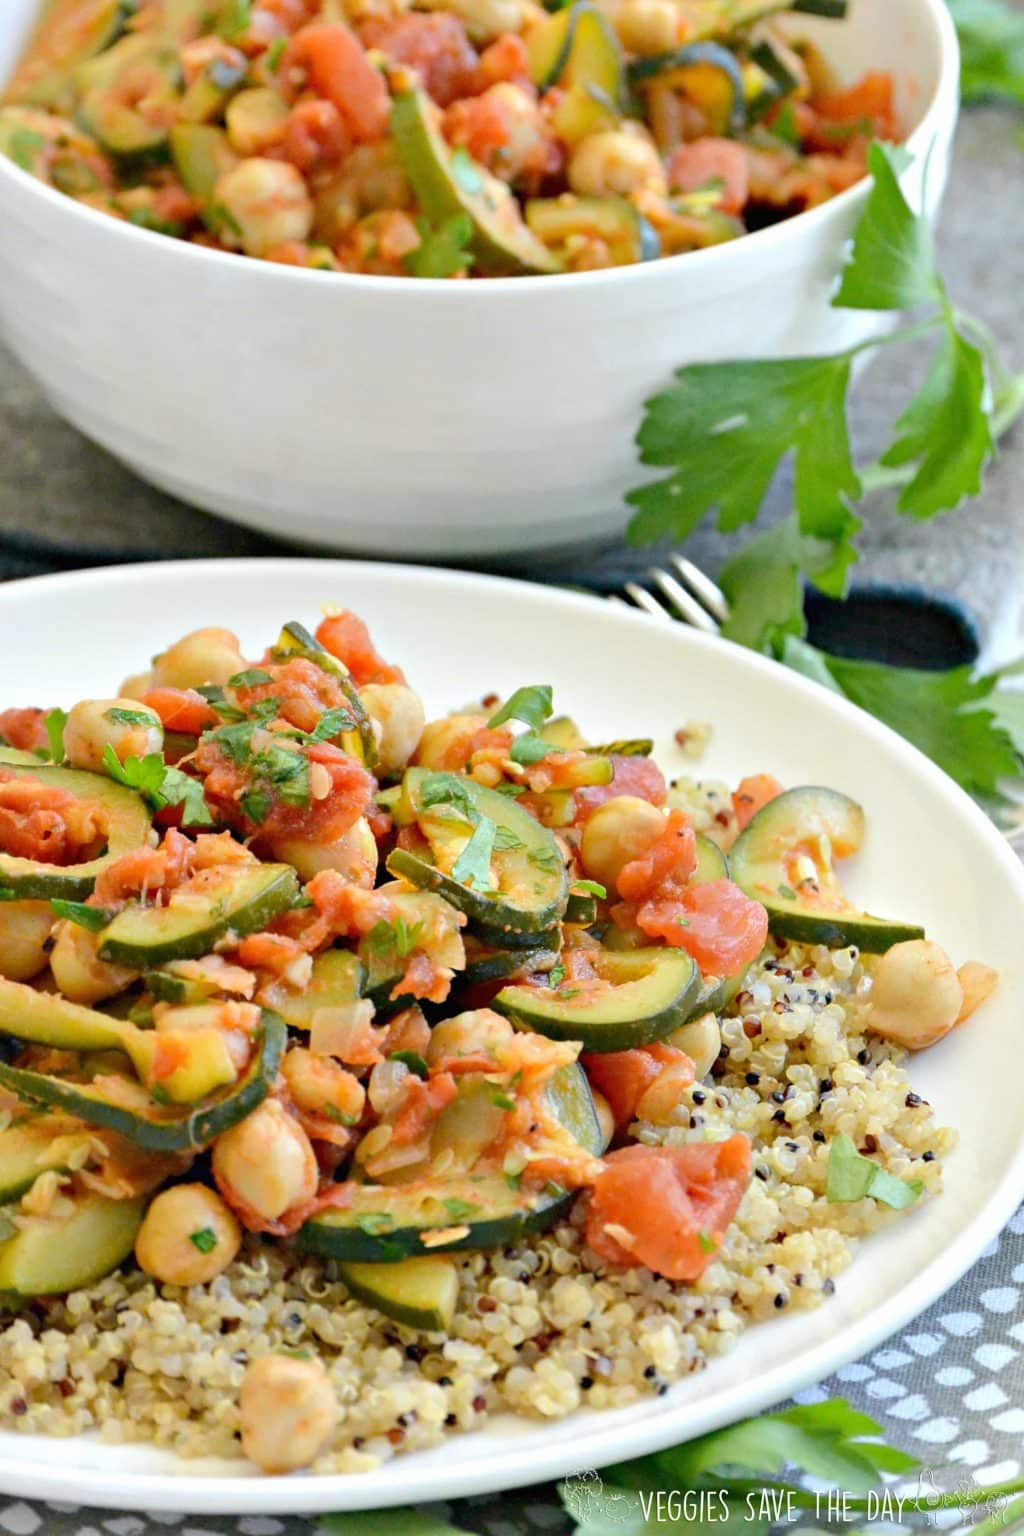 Plate of Zucchini Chickpea Stew served over cooked quinoa. This dish can be enjoyed hot or cold!